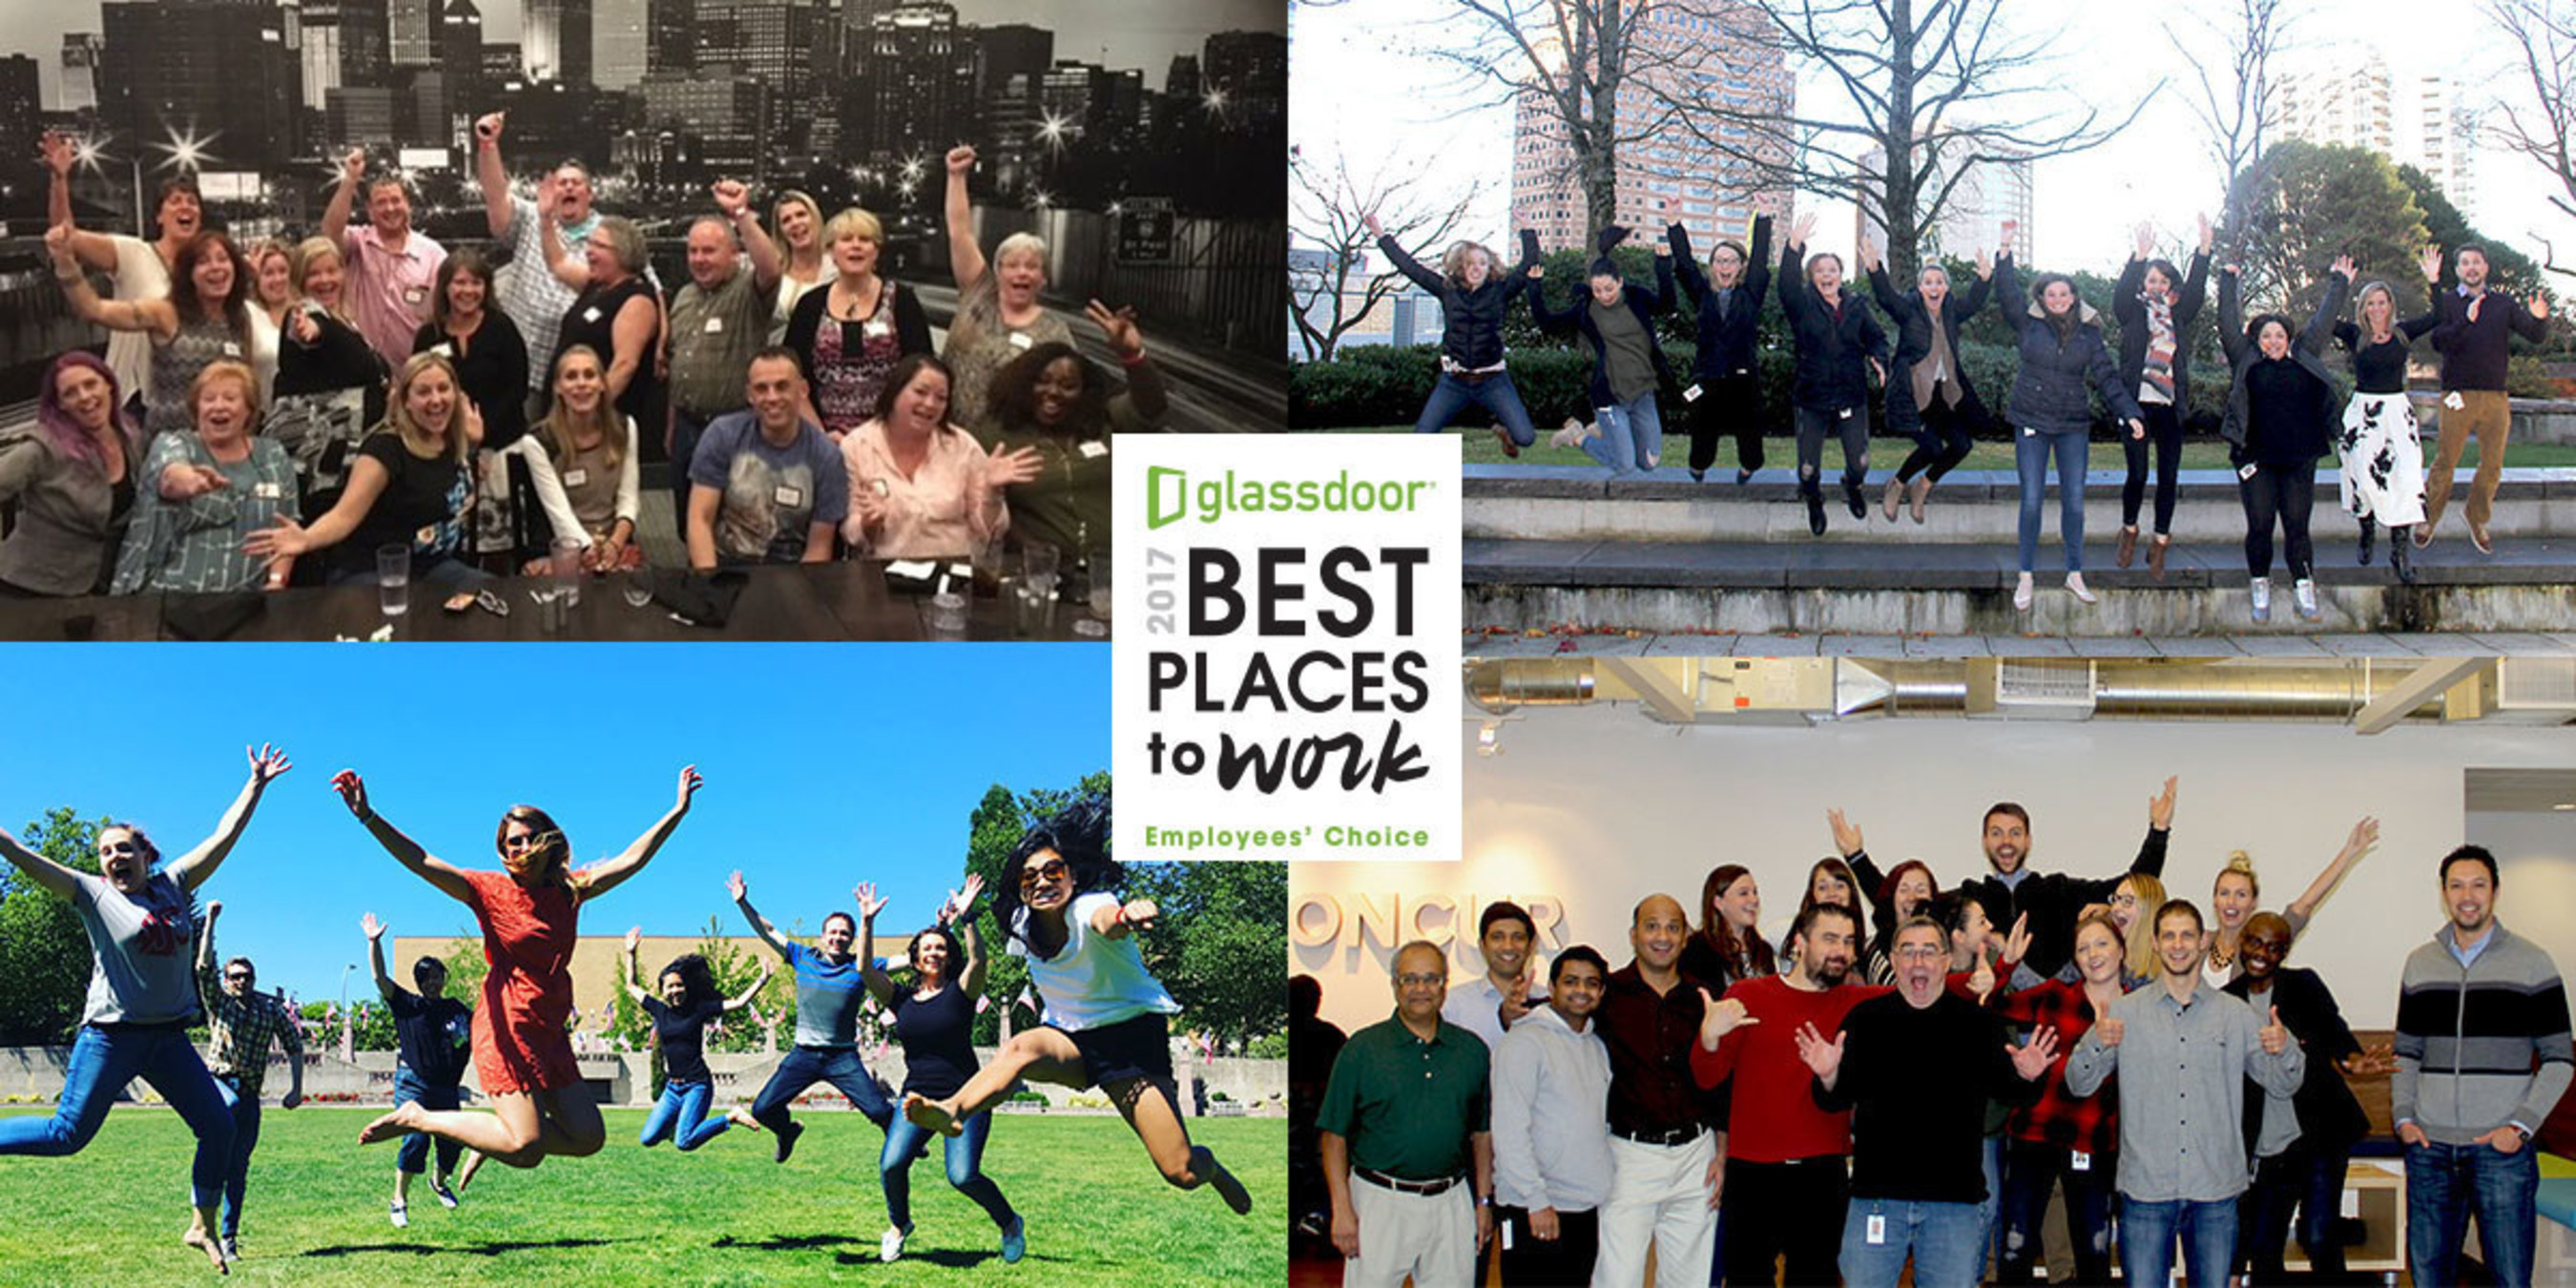 Concur Recognized as One of the Best Places to Work by Glassdoor